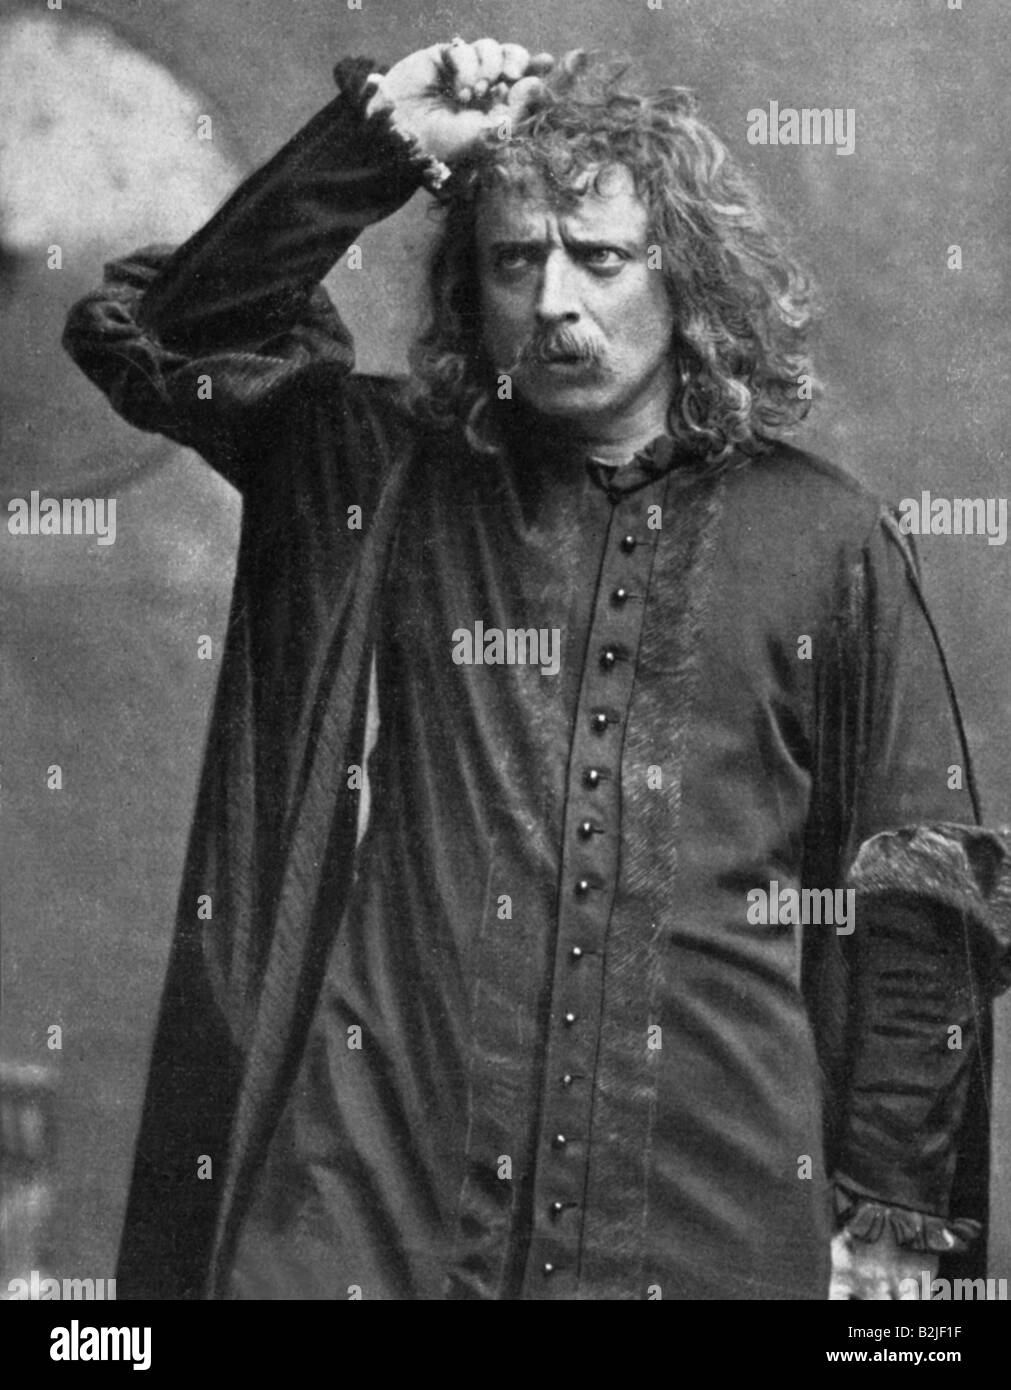 Zacconi, Ermete, 14.9.1857 - 14.10.1948, Italian actor, half length, in role of Hamlet, by William Shakespeare, - Stock Image